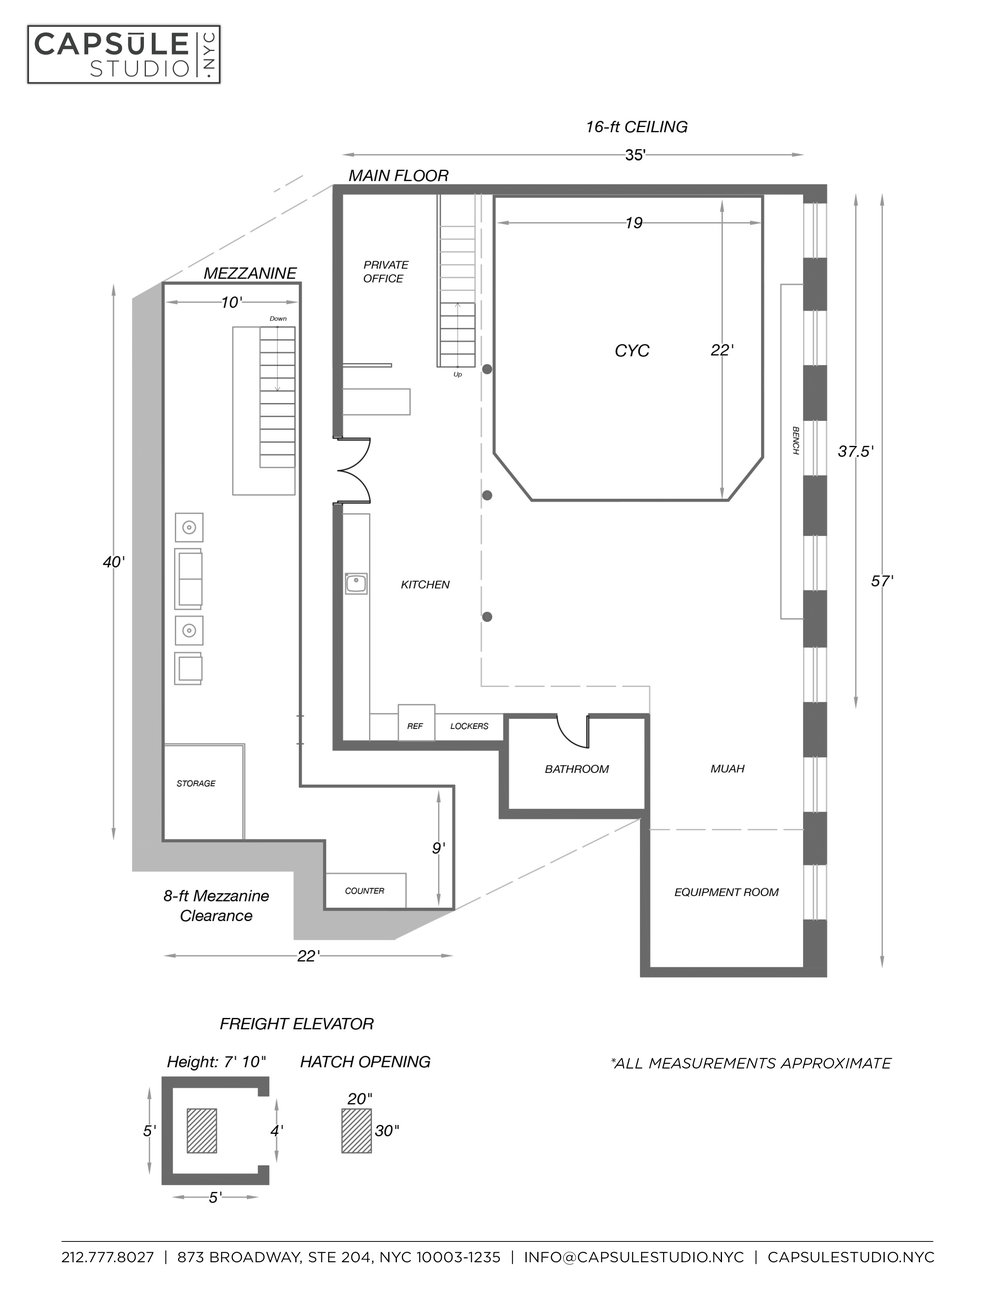 Main Floor Plan Capsule.jpg